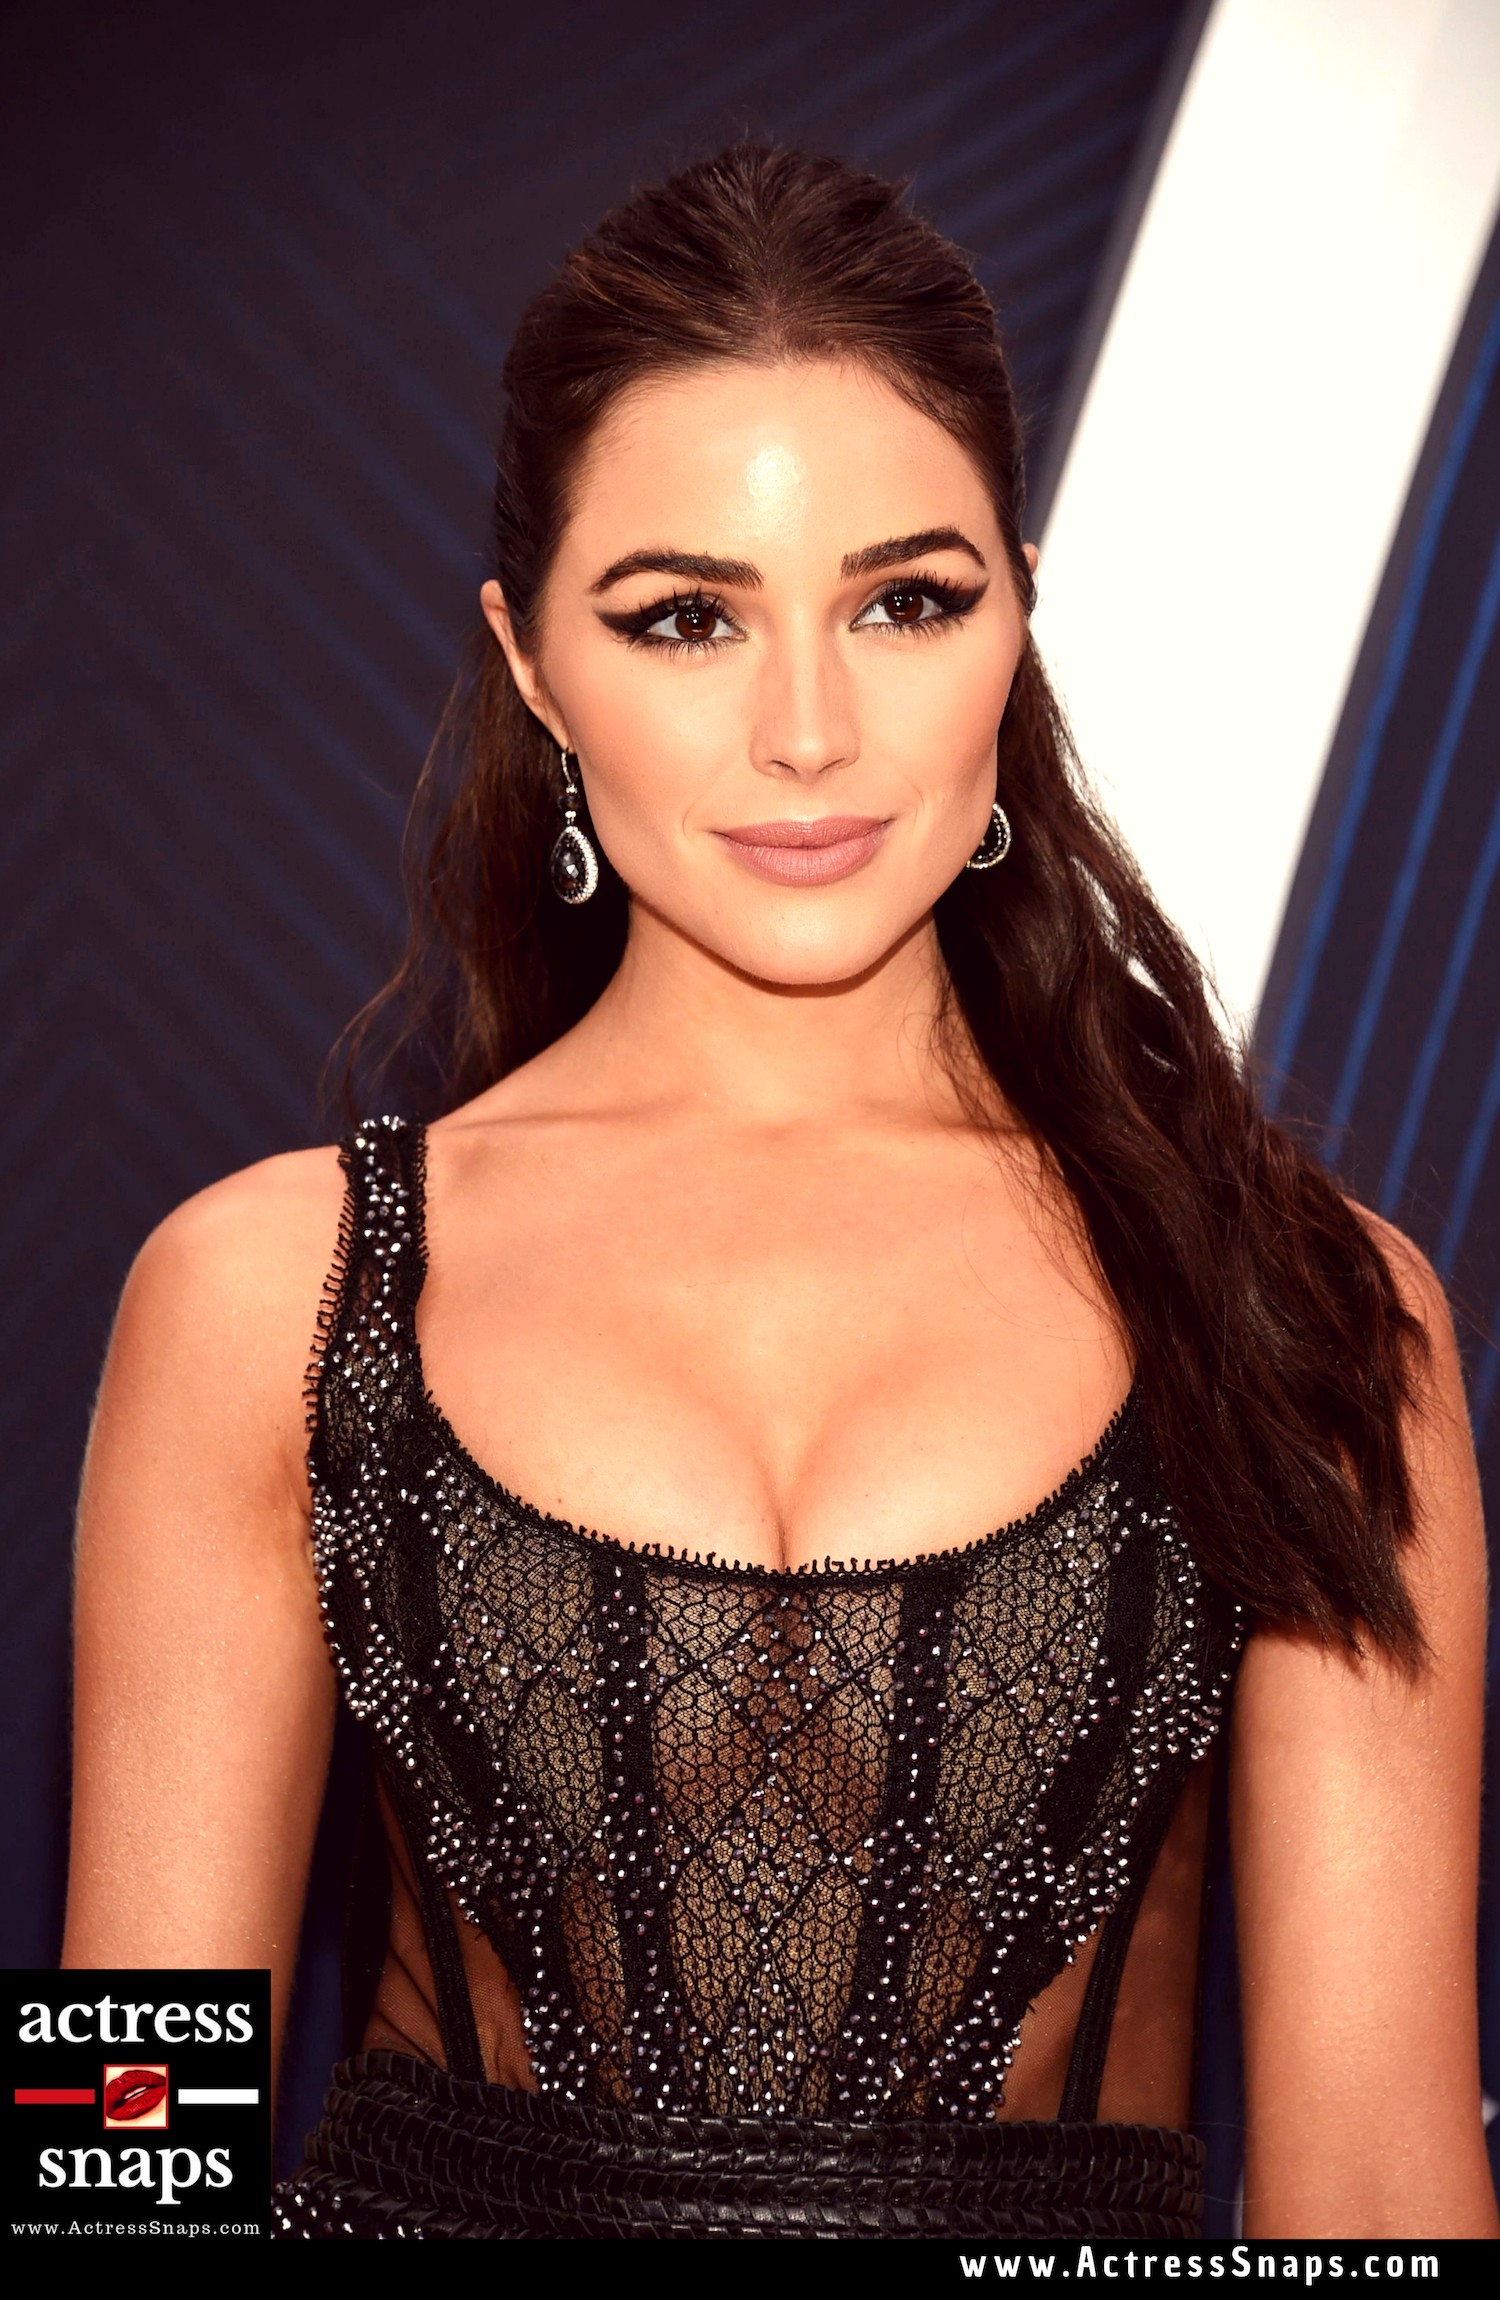 Sexy Olivia Culpo Pictures from her attending the Latest CMA Awards Night at Nashville